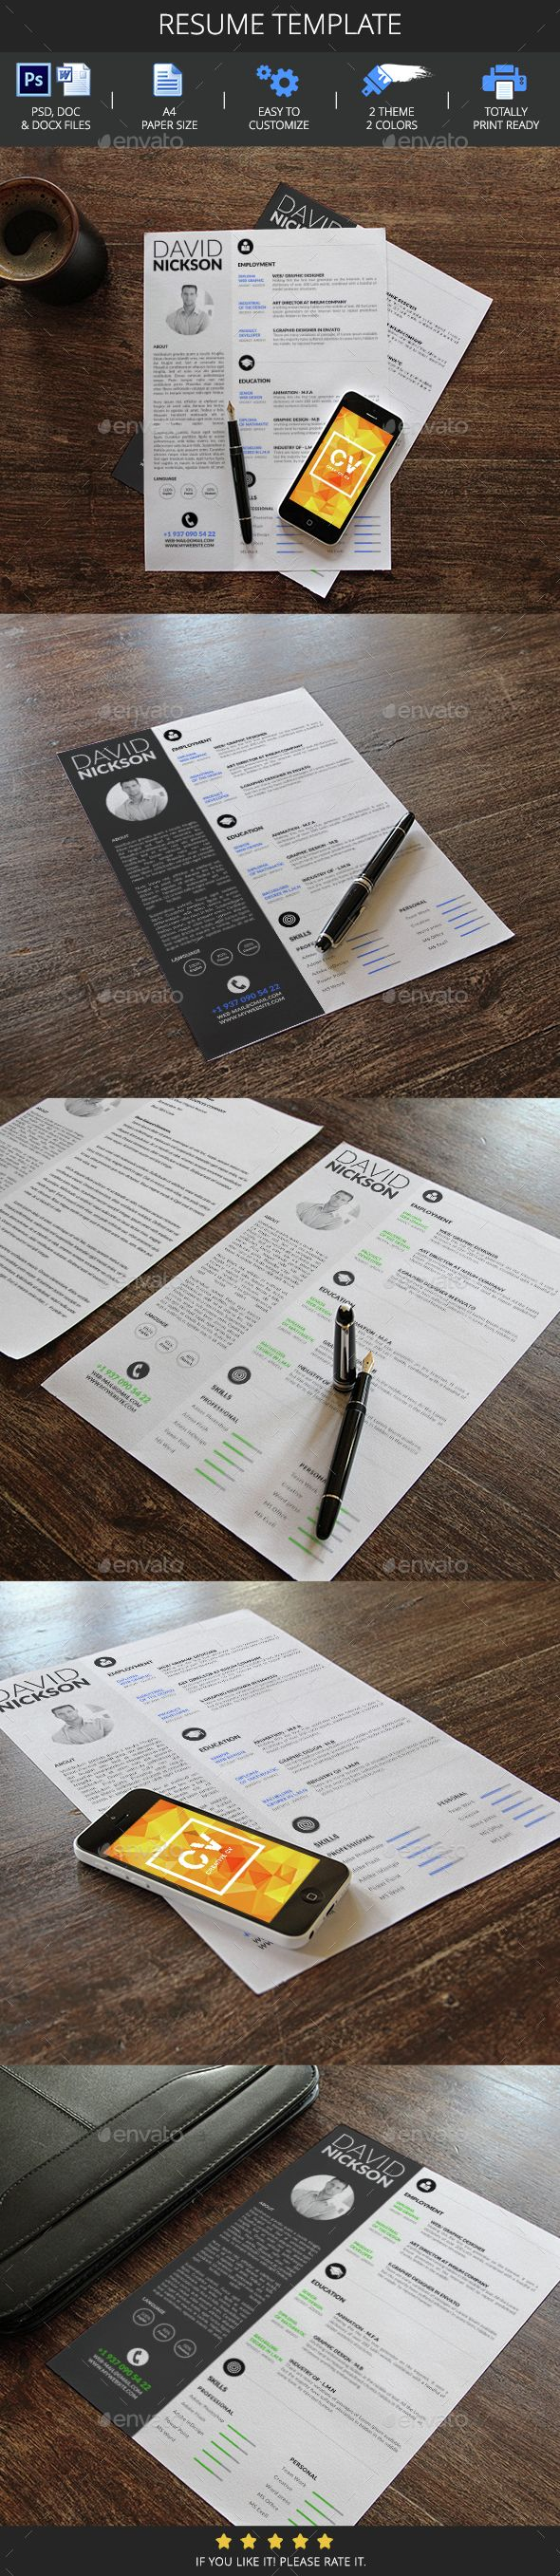 Resume Template PSD Download here httpgraphicrivernetitem 104